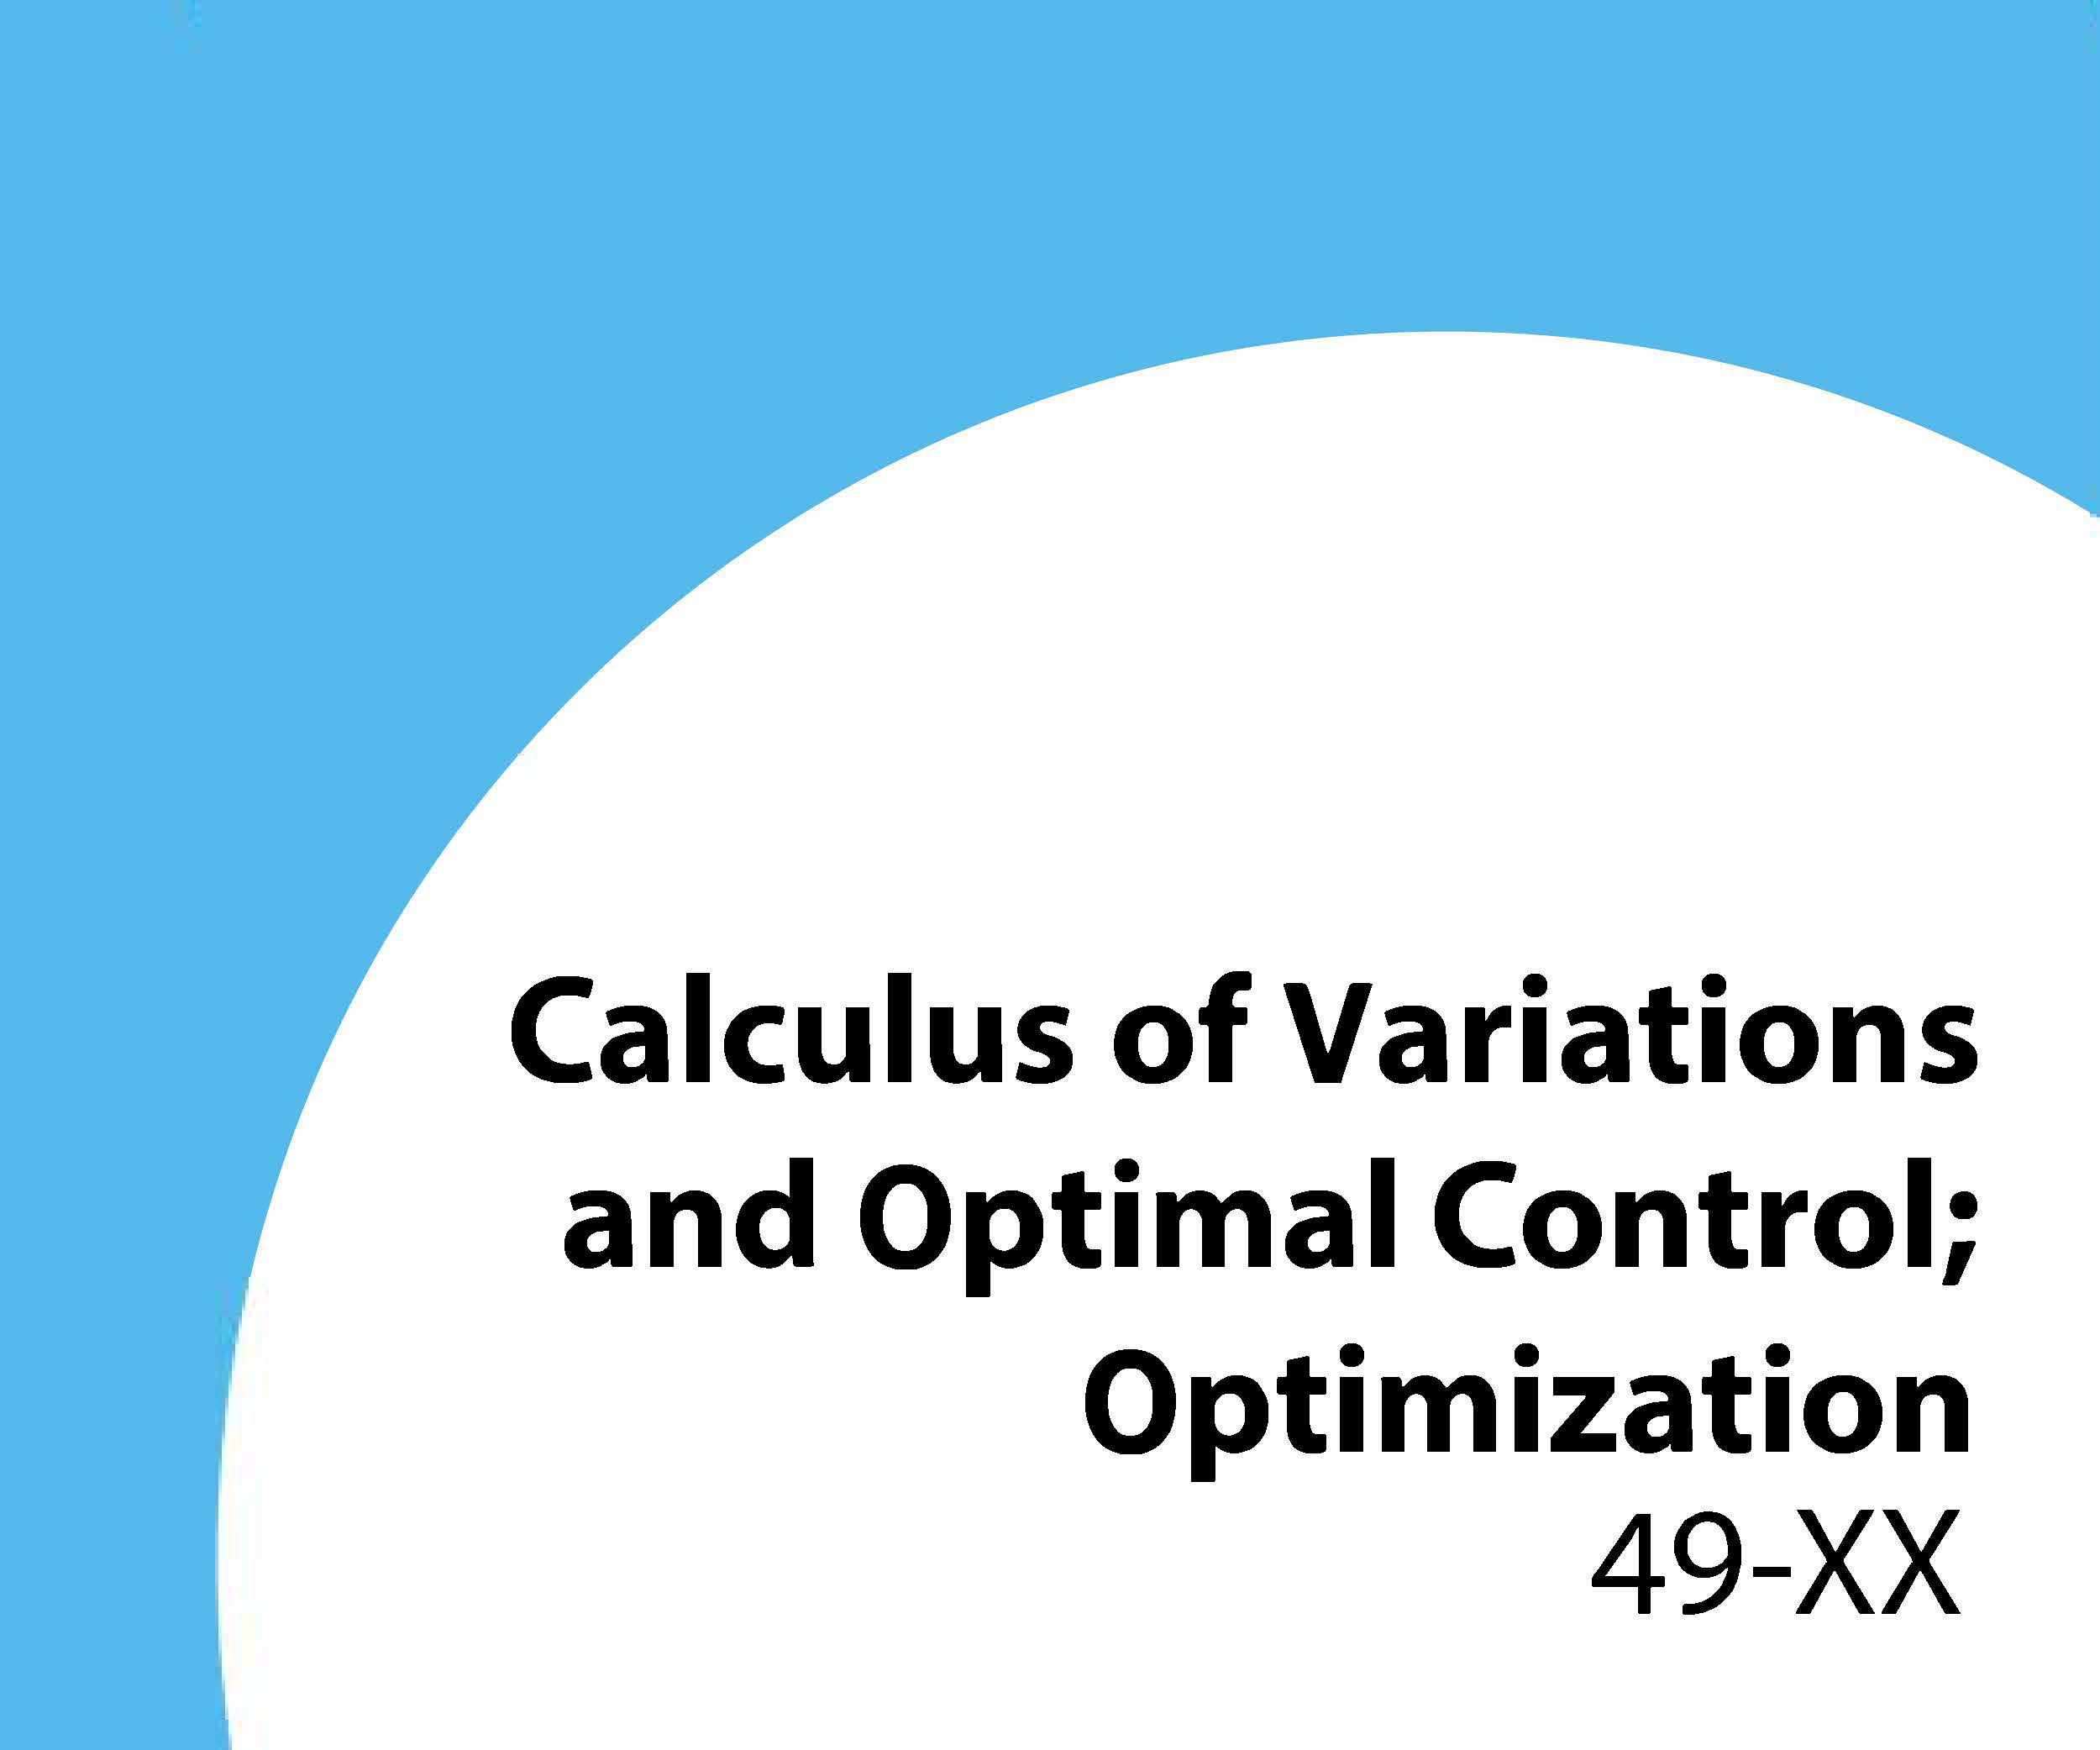 49-xx Calculus of variations and optimal control; optimization